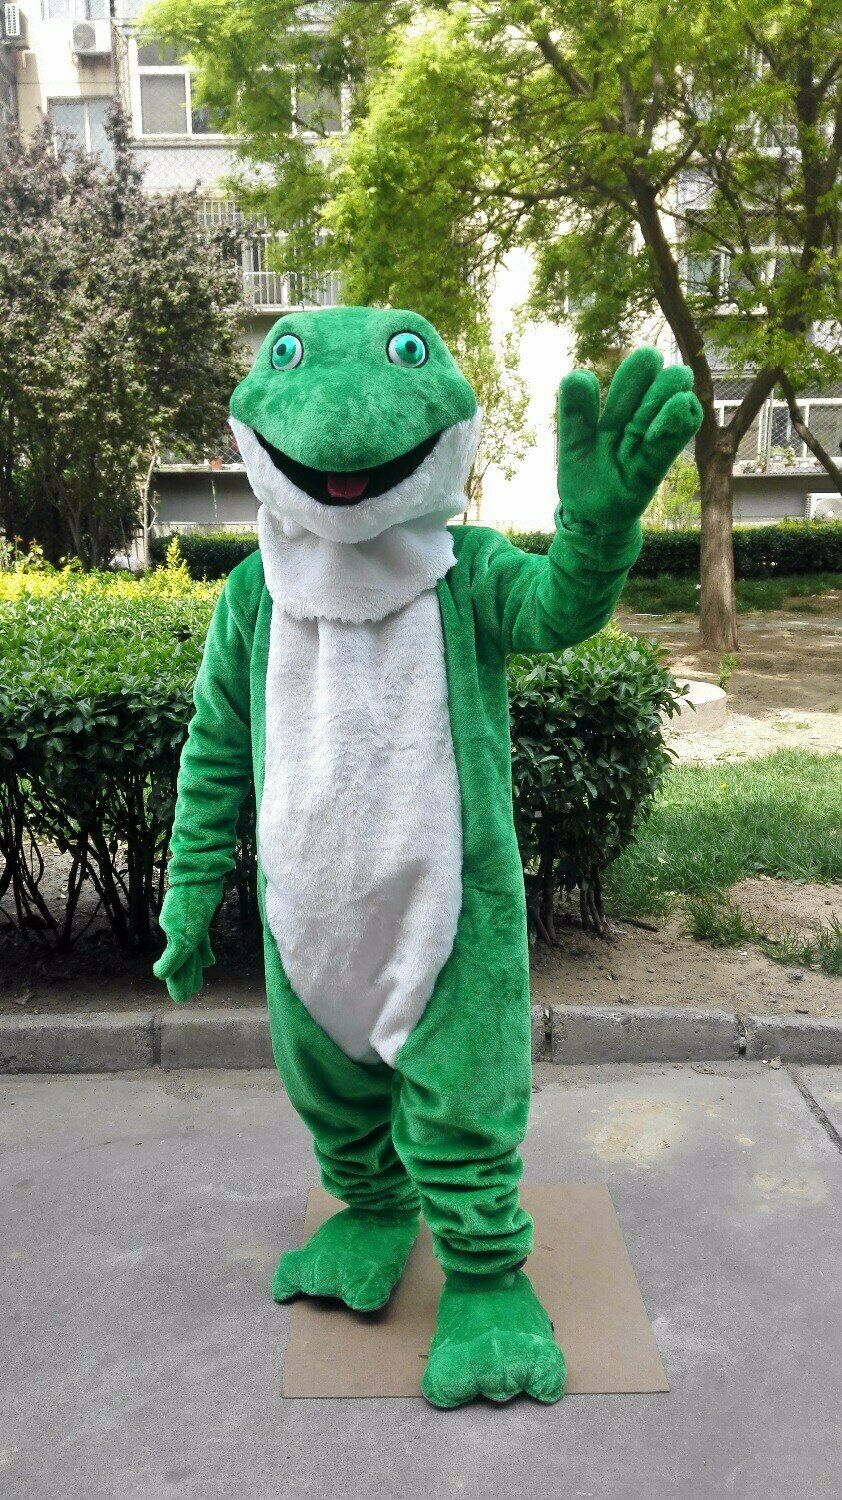 Details about  /Stork Mascot Costume Cosplay Party Fancy Dress Outfit Advertising Halloween Adul